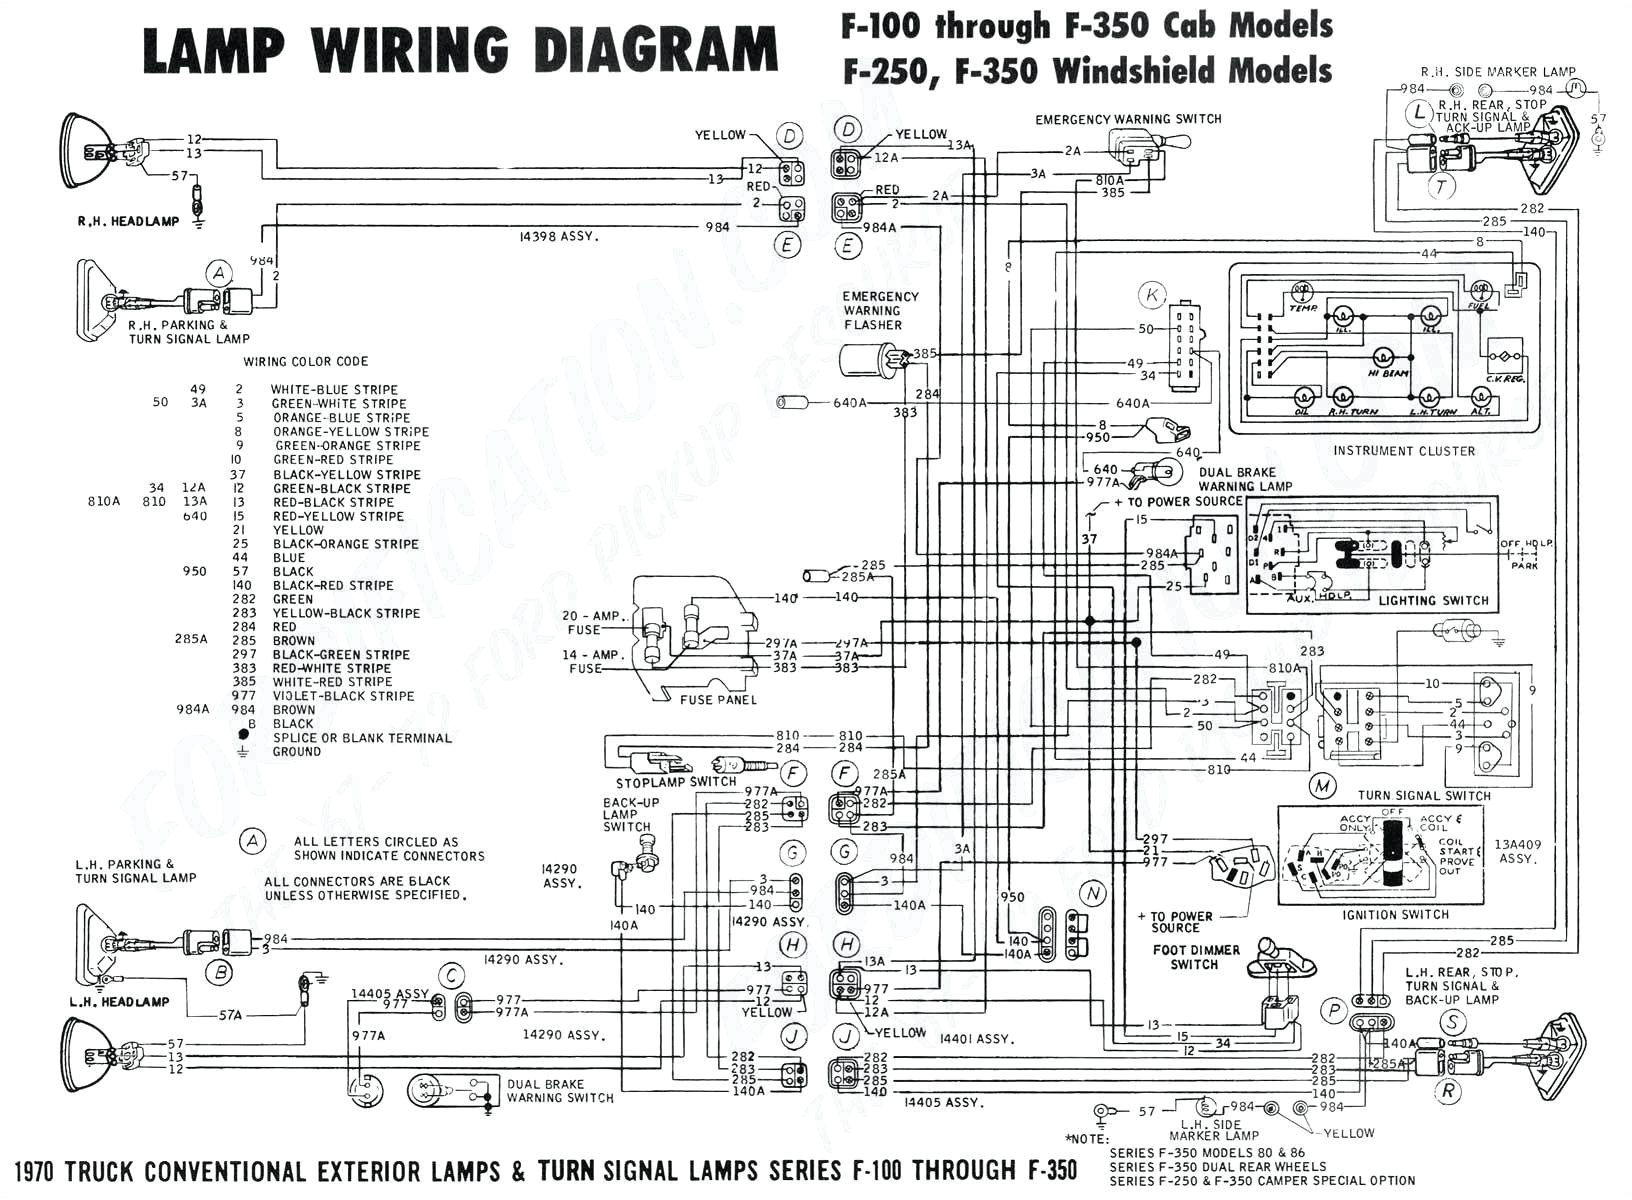 91 240sx Radio Wiring Diagram 93 240sx Wiring Diagram Free Download Schematic Wiring Diagram